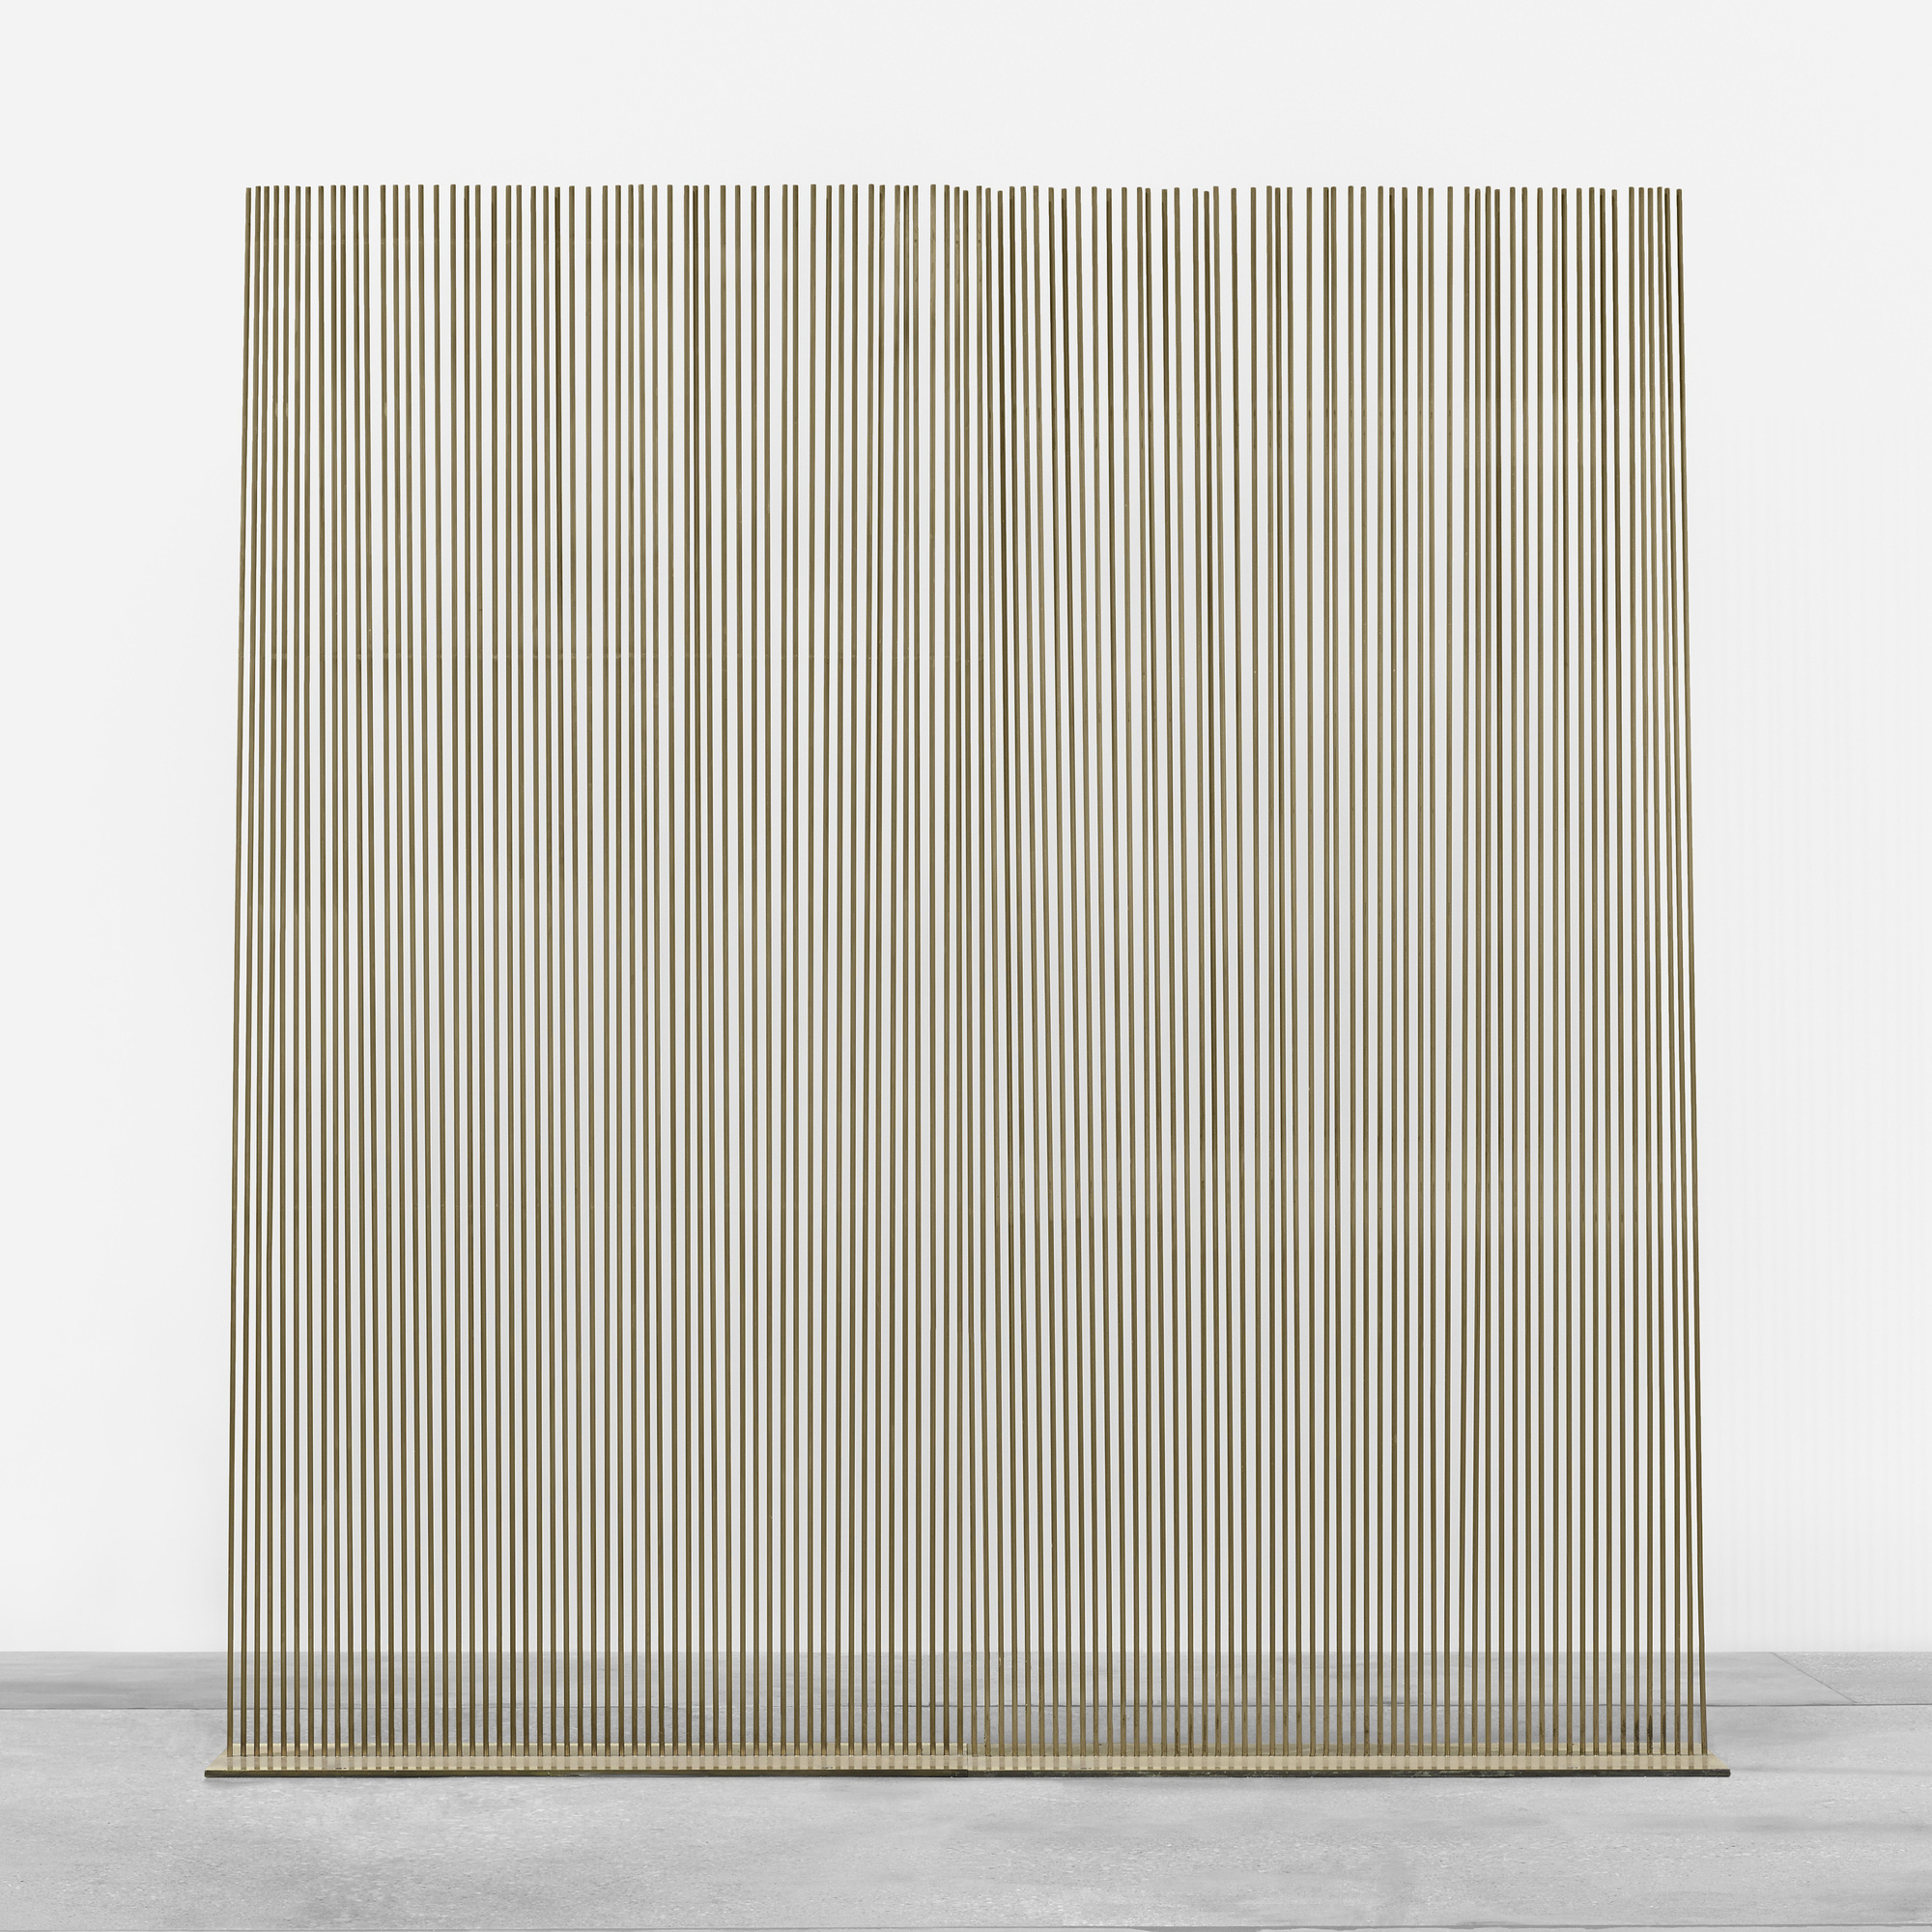 30: Harry Bertoia / Untitled (Monumental Sonambient) from the Standard Oil Commission (1 of 4)